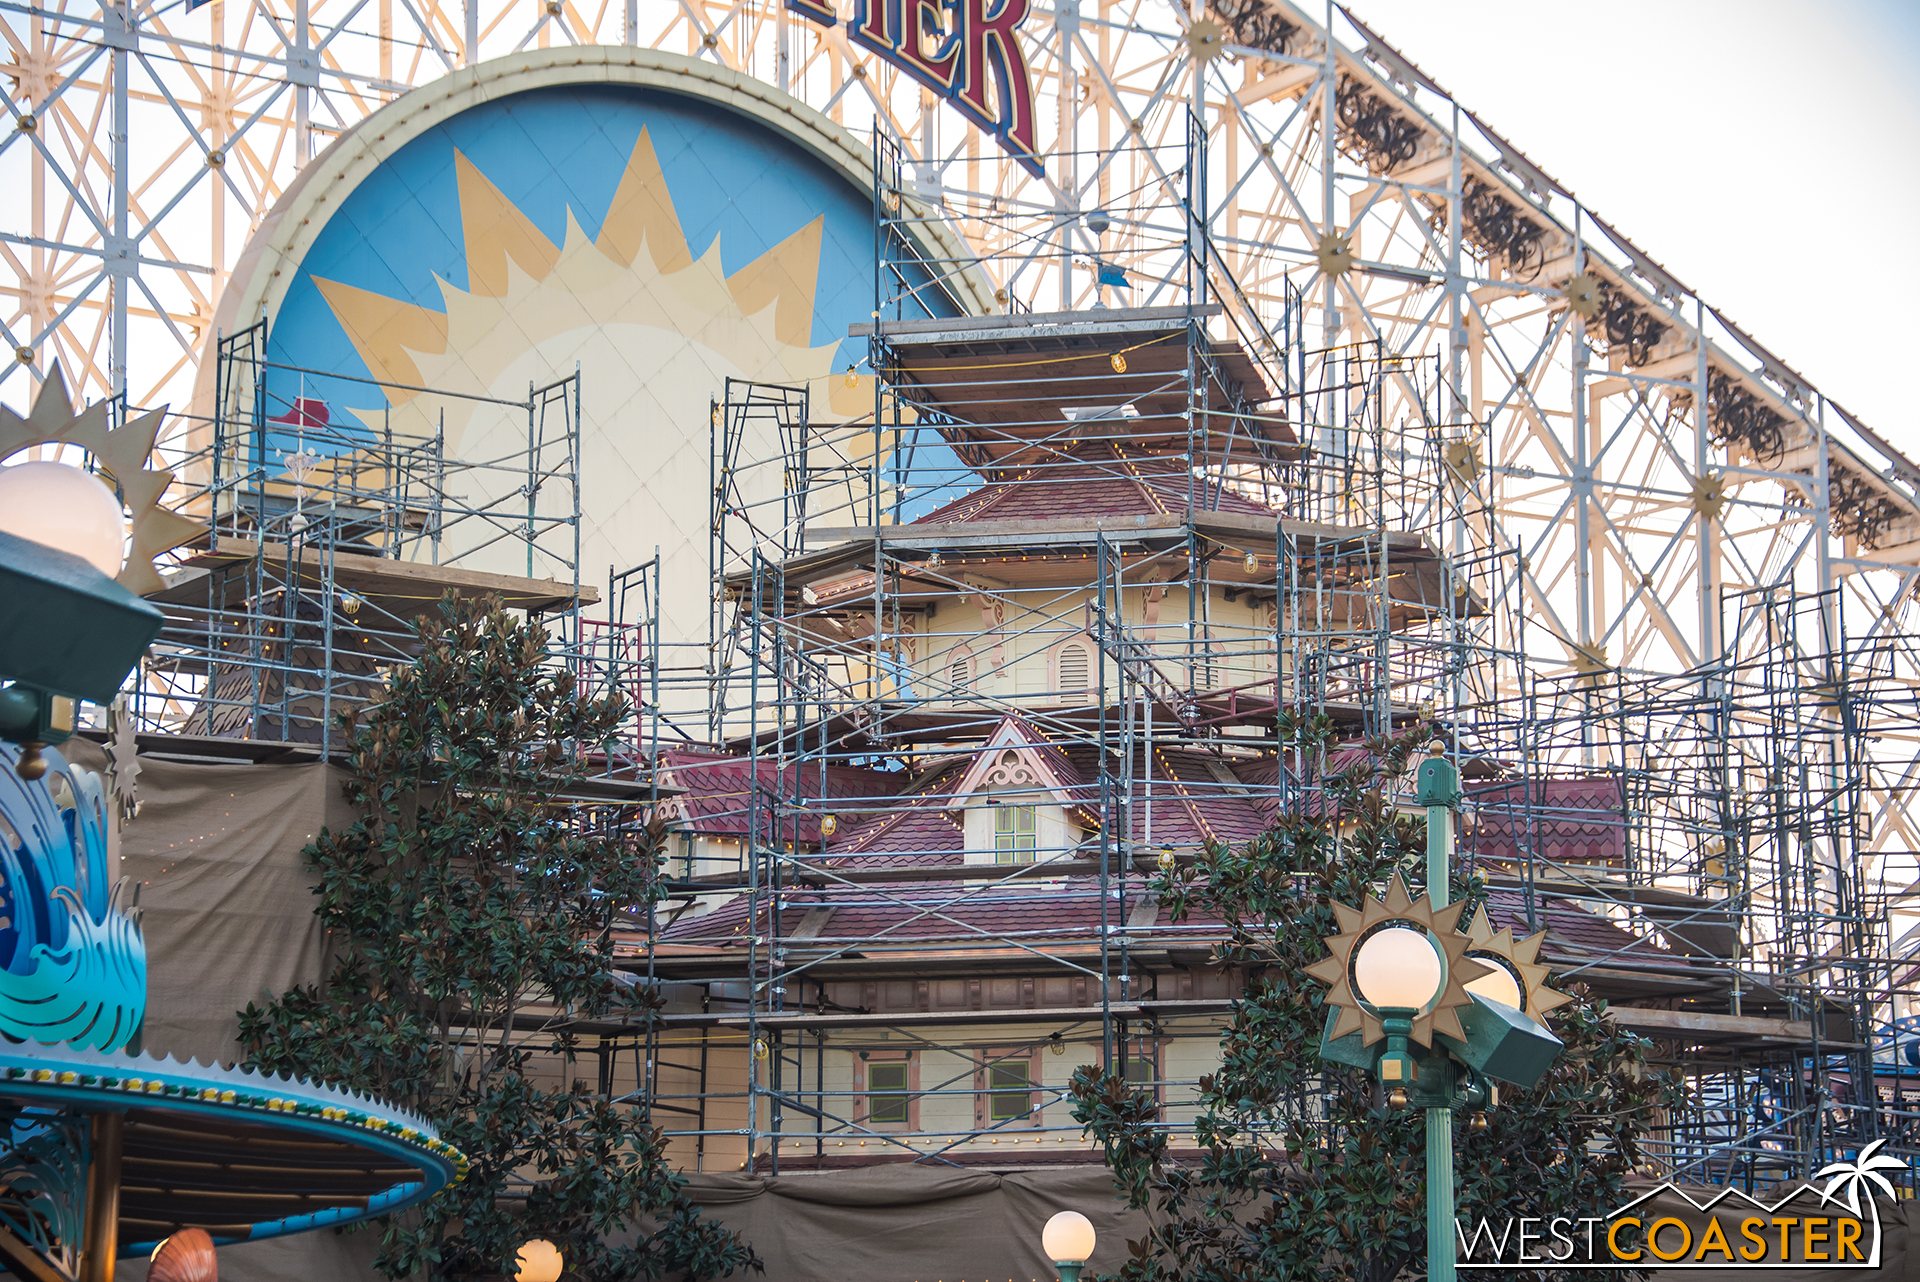 There's a ton of scaffolding around the Toy Story Midway Mania gift shop, which remains open during this construction.